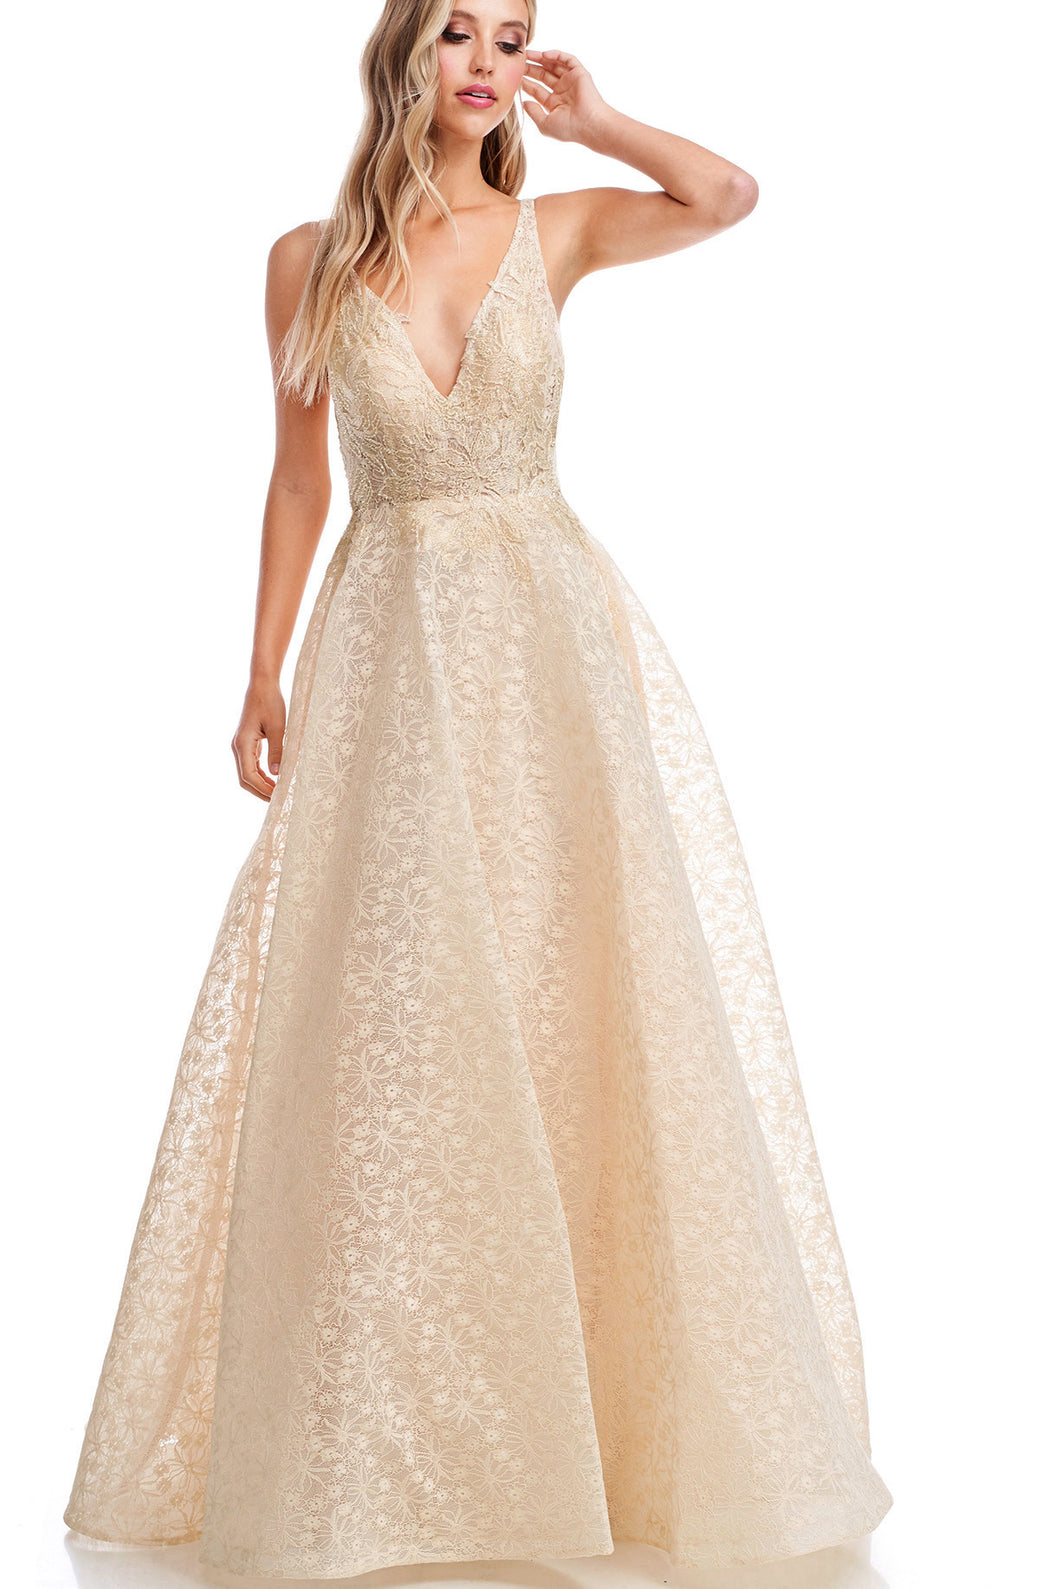 Diggz Prom BC AN9001 - V-Neck Tank Style A-Line Ball Gown with Floral Lace Top And Embossed Skirt - Diggz Prom